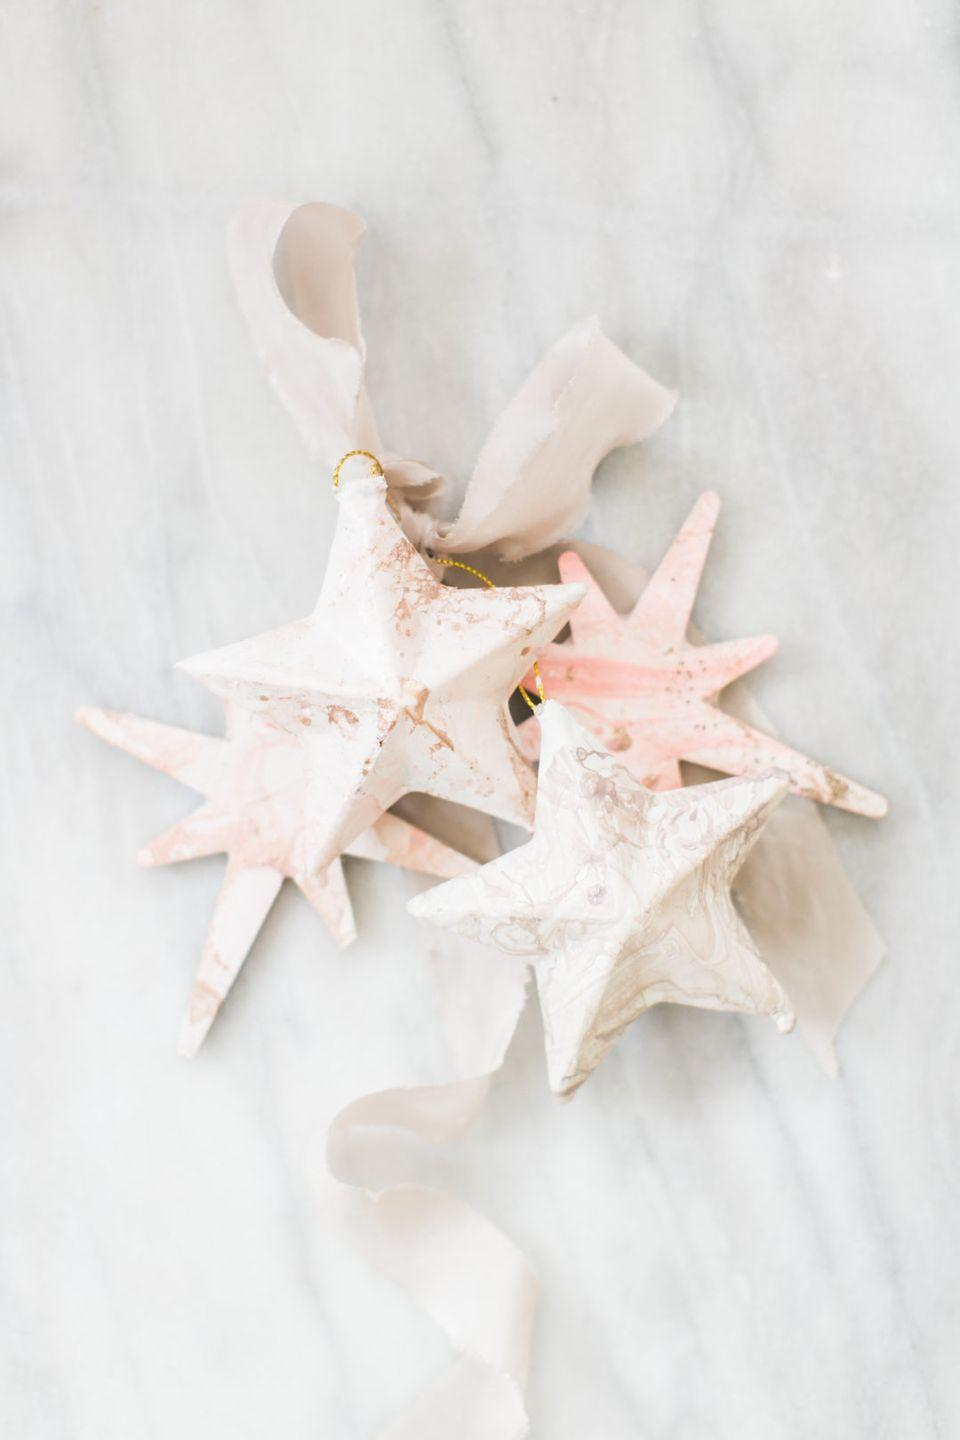 """<p>This DIY ornament gives off major seashell vibes. Bring a piece of the beach right into your home with this easy-to-follow tutorial.</p><p>Get the tutorial at <a href=""""http://www.jacquelynclark.com/2017/12/06/diy-christmas-ornament/"""" rel=""""nofollow noopener"""" target=""""_blank"""" data-ylk=""""slk:Linen & Lark"""" class=""""link rapid-noclick-resp"""">Linen & Lark</a>.</p>"""